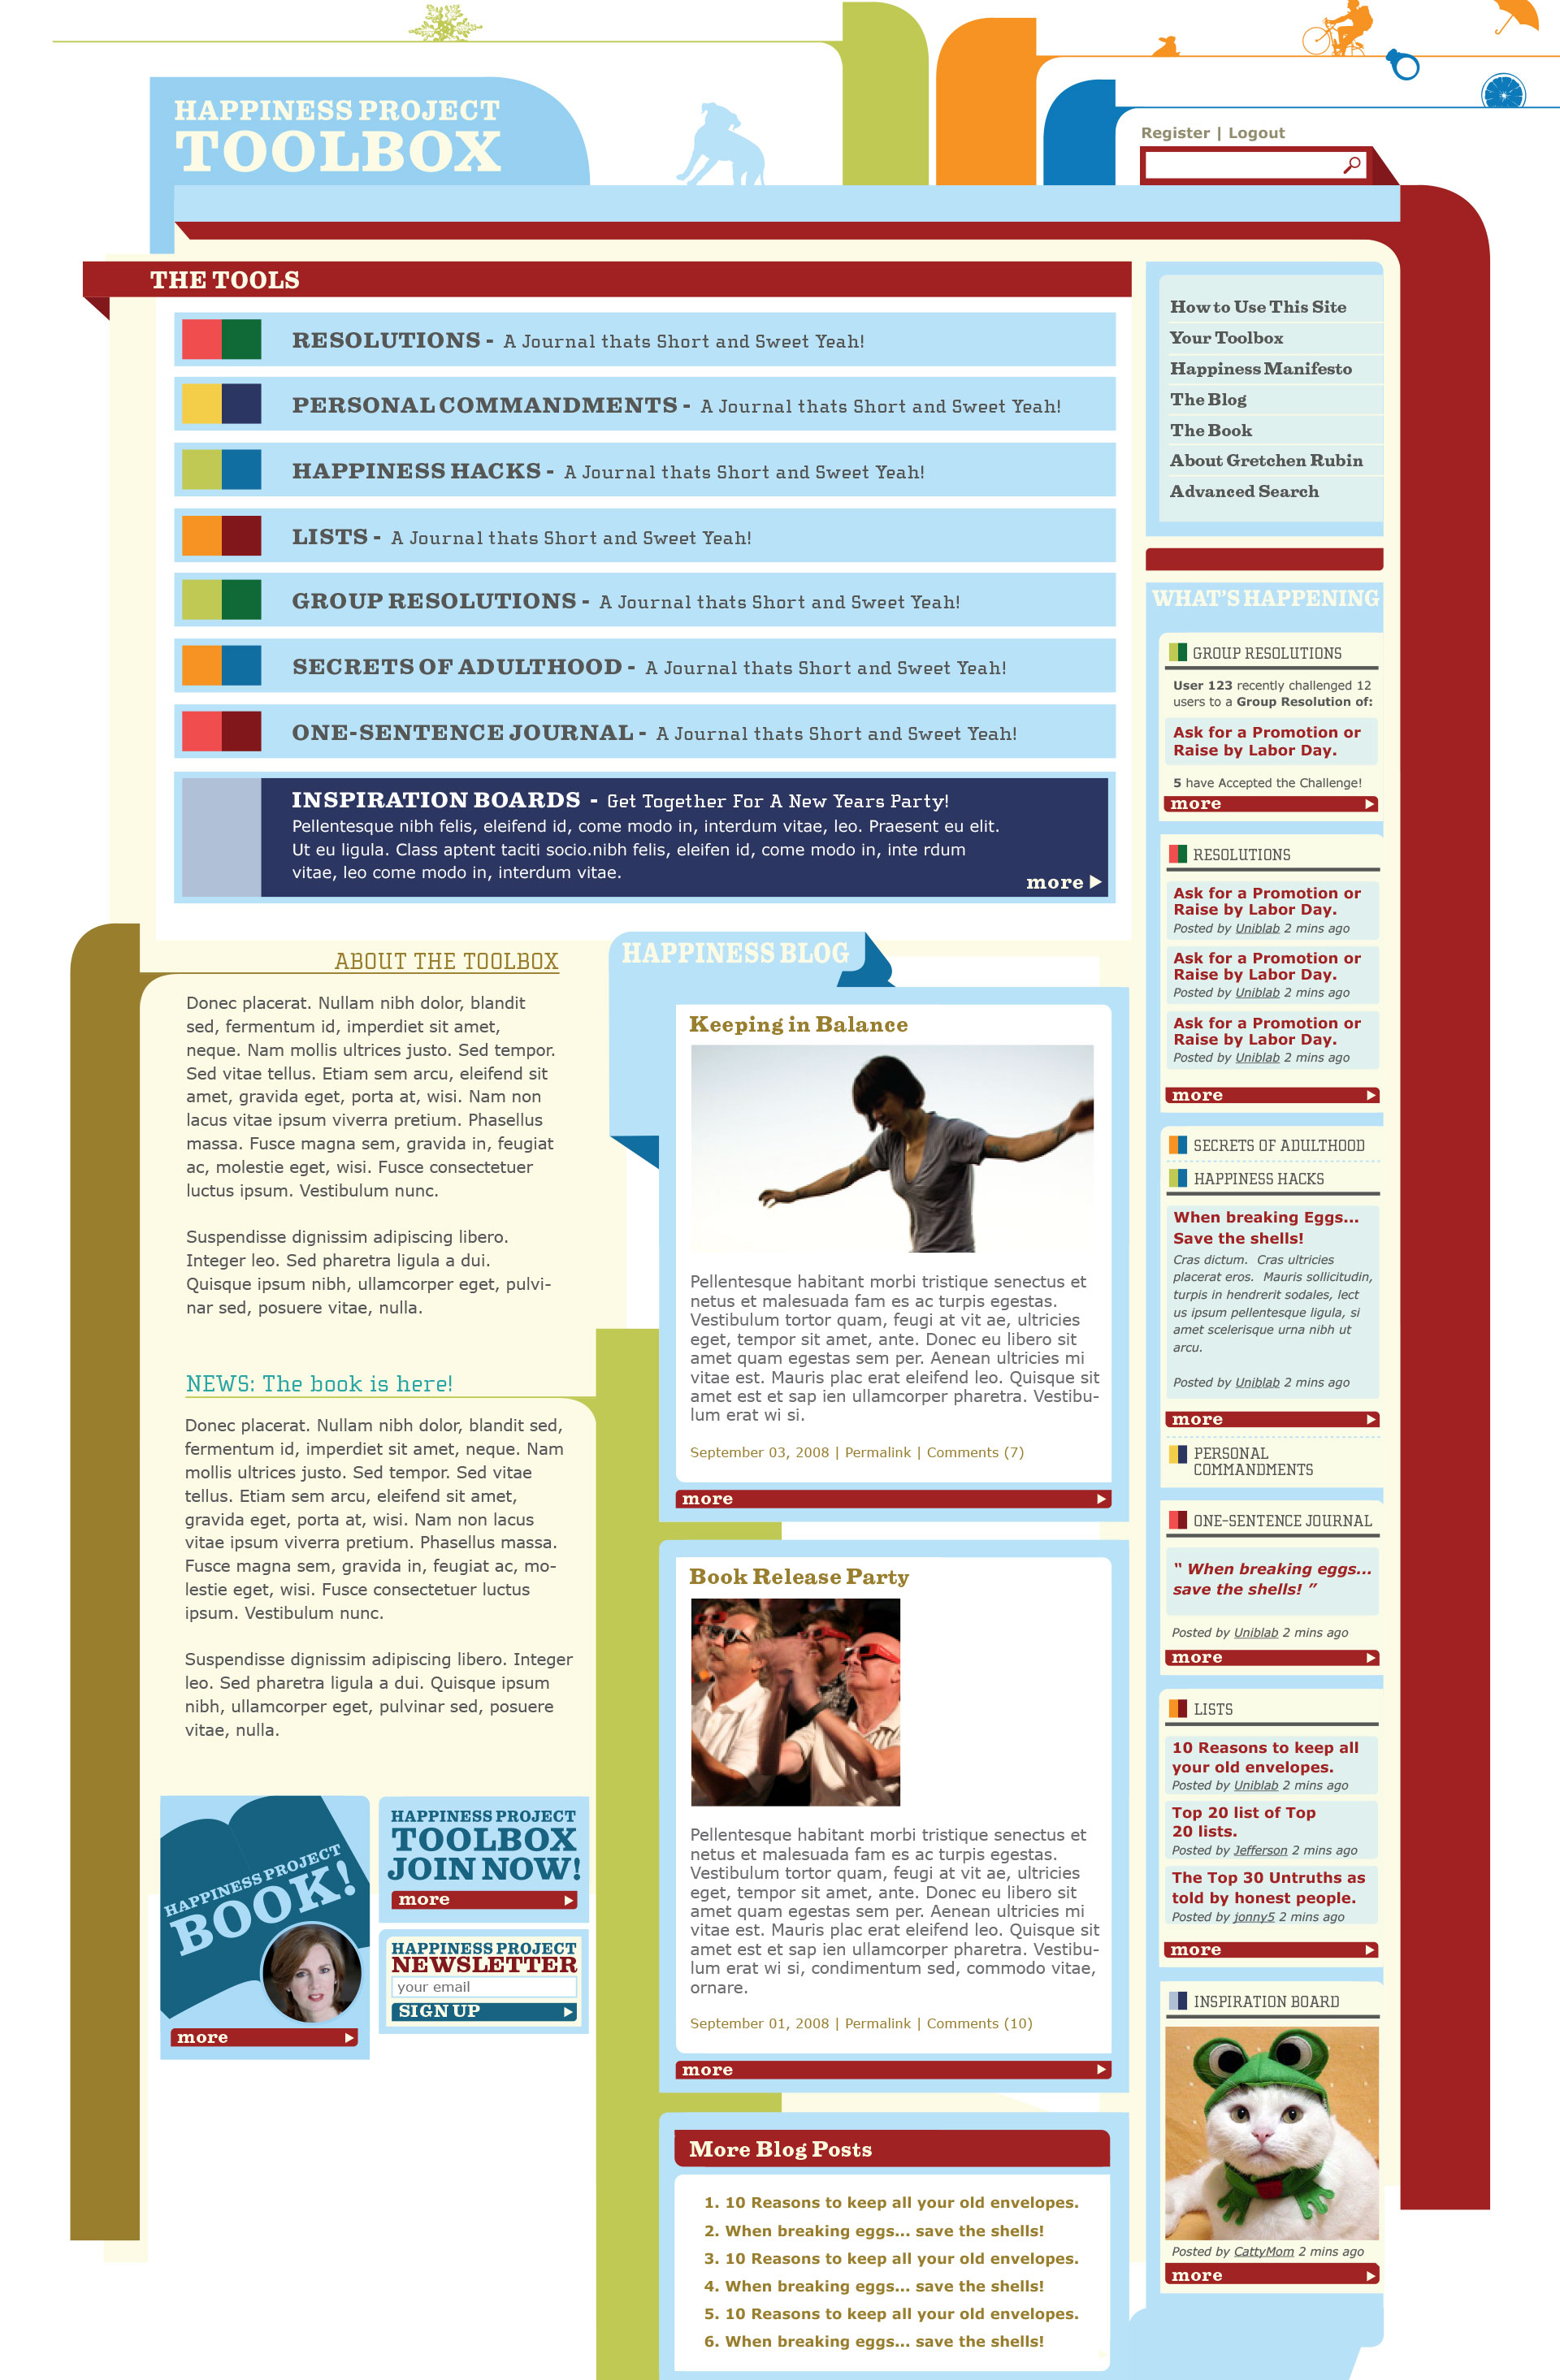 Gretchen Rubin Happiness Project Toolbox